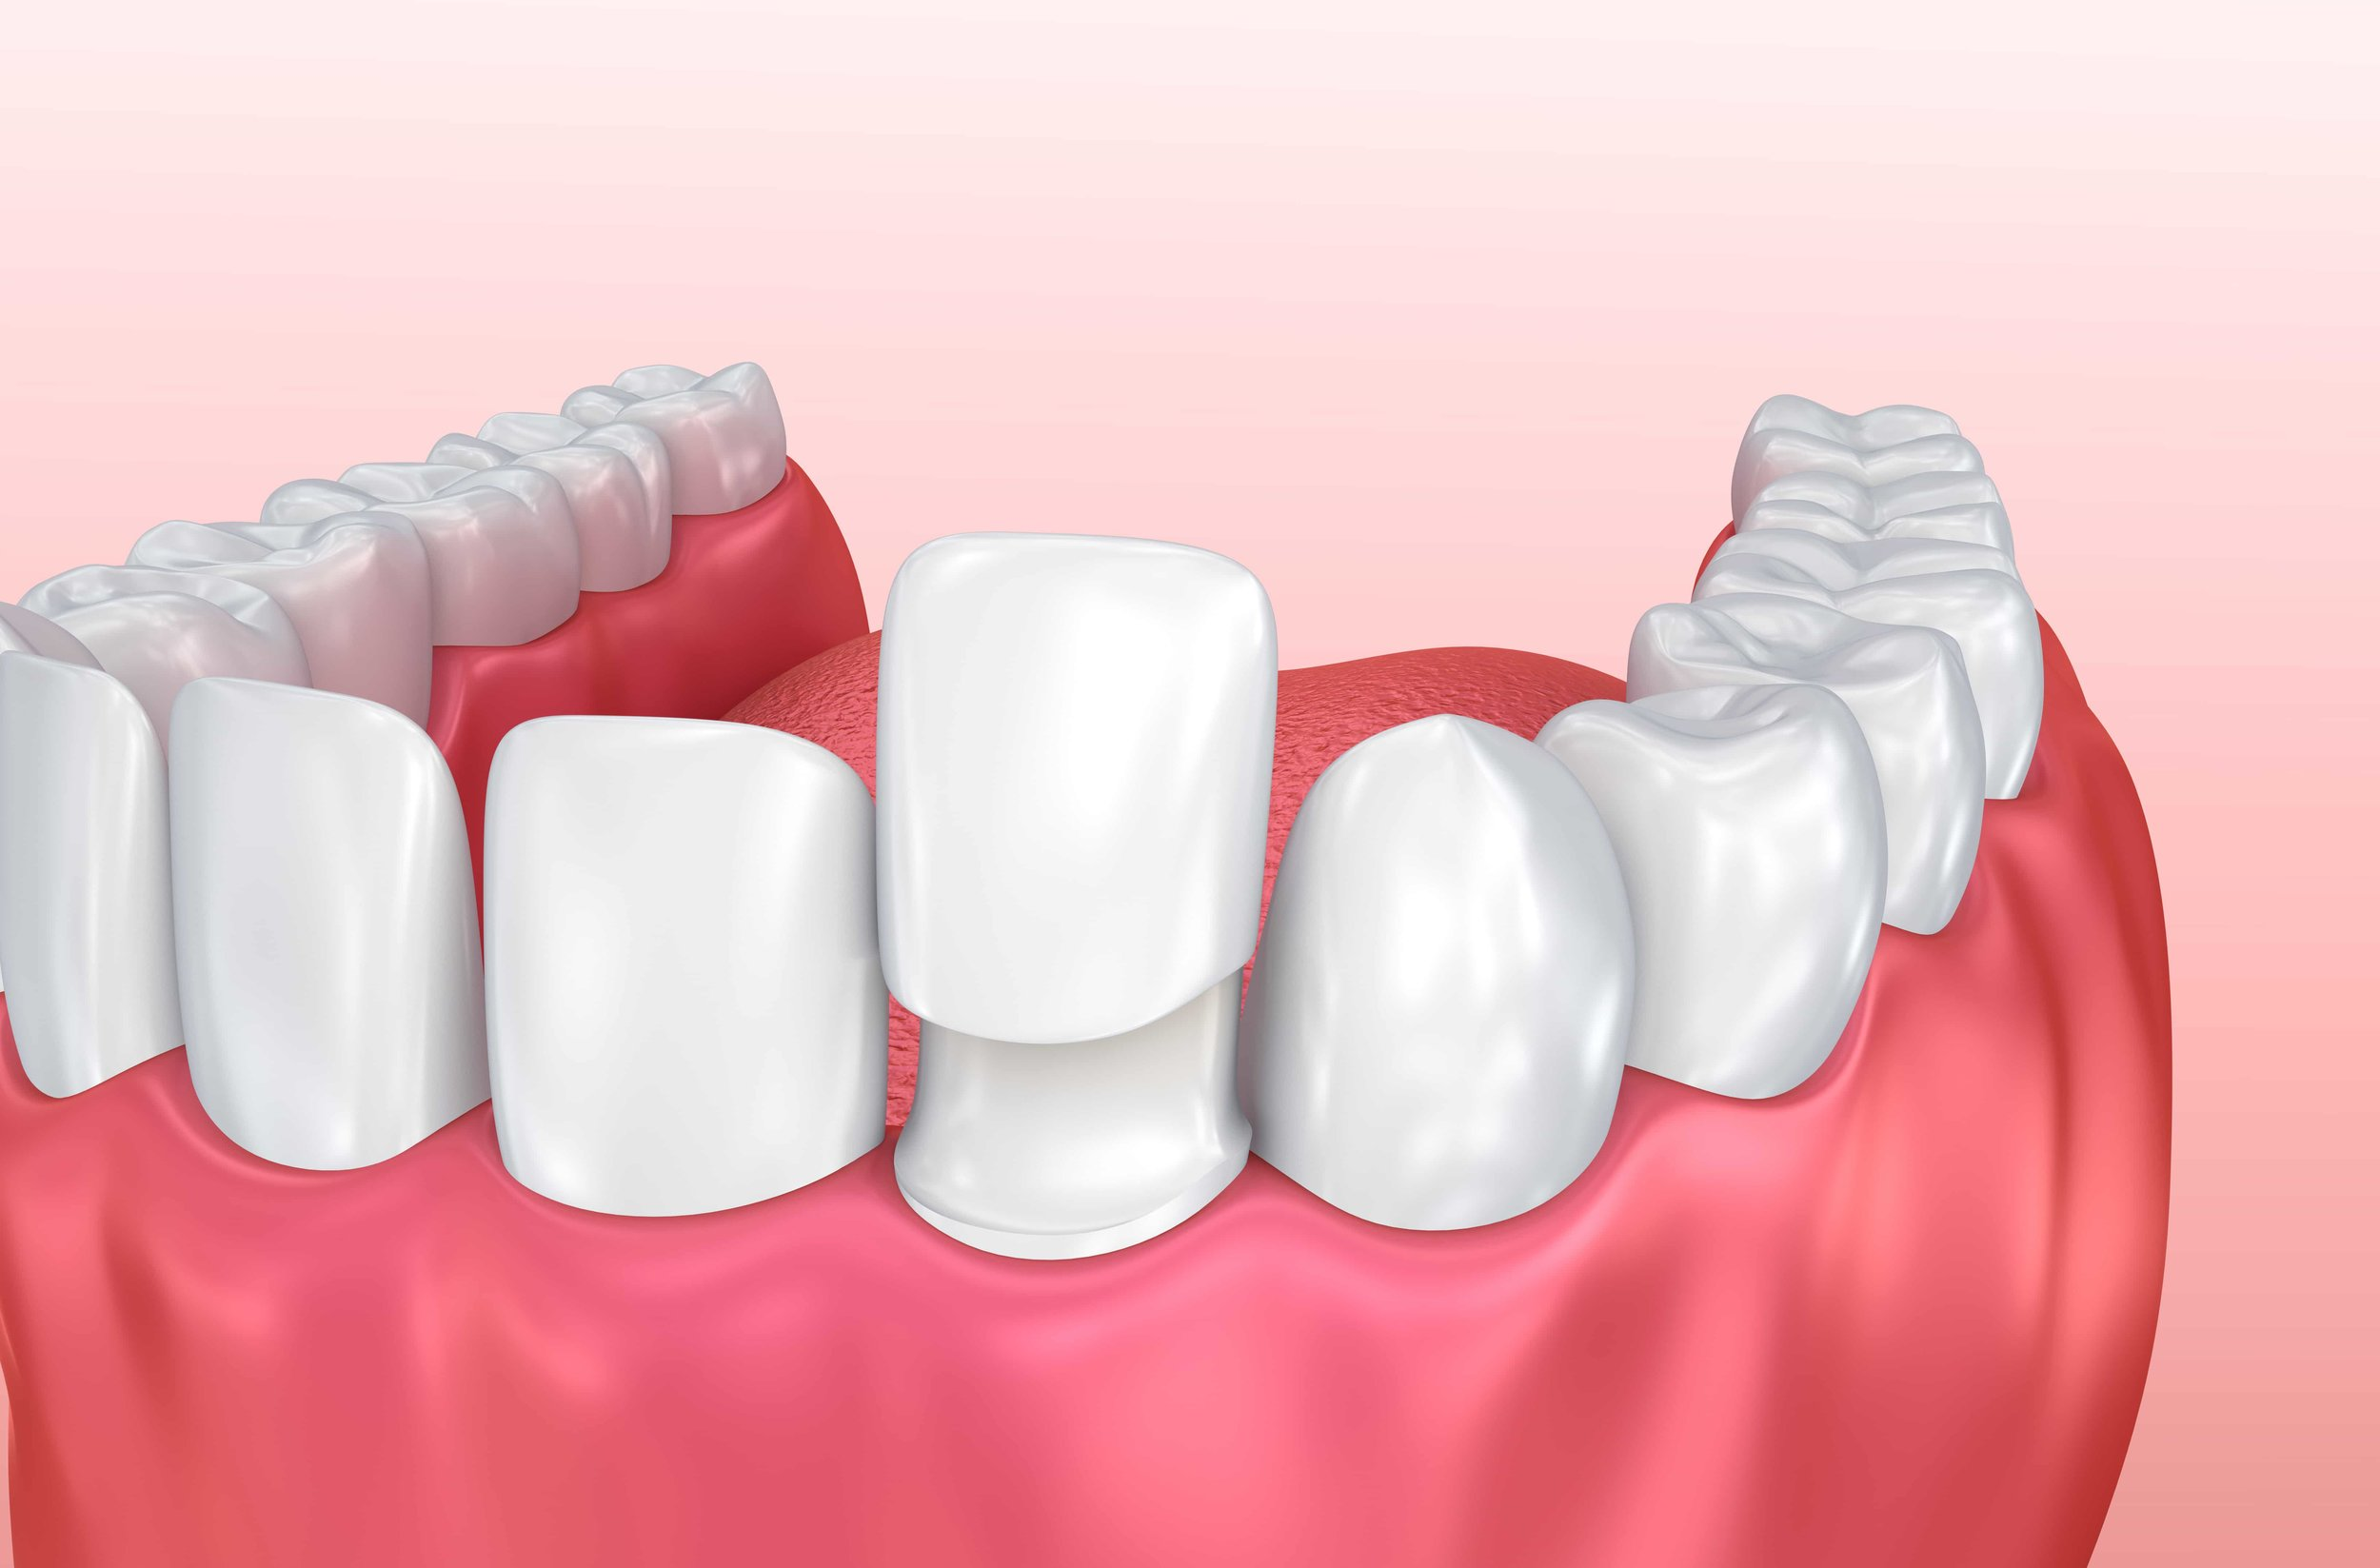 Veneers are thin layers of restorative materials that are bonded to the surface of the teeth to protect the damaged teeth or improve its appearance. It is used to treat different defects of the teeth such as chipped or worn teeth. They can also be used to restore the natural color of teeth that have been damaged because of stains. A veneer can also be used to cover large gaps between the teeth.   TYPES OF VENEERS  There are different types of veneers depending on the type of materials used to make them. The most popular is the porcelain one. Also called porcelain laminates, the thickness is around half a millimeter and is fixed on to the front of the teeth in order for you to have a beautiful outcome. This type of material mimics the teeth structure because it is hard. It also resists wear thus it can last for a long time.   Another type of veneer is the dental composite that is made from synthetic resins. This type of veneer is cheap, insoluble, and very easy to manipulate. It is also very tolerant to dehydration and is equally as beautiful as those made of porcelain.  CARING FOR YOUR VENEERS  Taking care of your veneers largely depends on how they are used or taken care of. Taking care of these dental structures require good oral hygiene. Aside from flossing, it is crucial to brush your teeth using a non-abrasive toothpaste that contains fluoride. This will help reduce the decay especially in the areas of the tooth or teeth that do not have veneers.   It is also important to avoid exposing them to too much pressure especially if you have porcelain veneers, as they are incapable of withstanding strong impacts. Make sure that you don't bite on hard objects or avoid clenching or grinding your teeth.